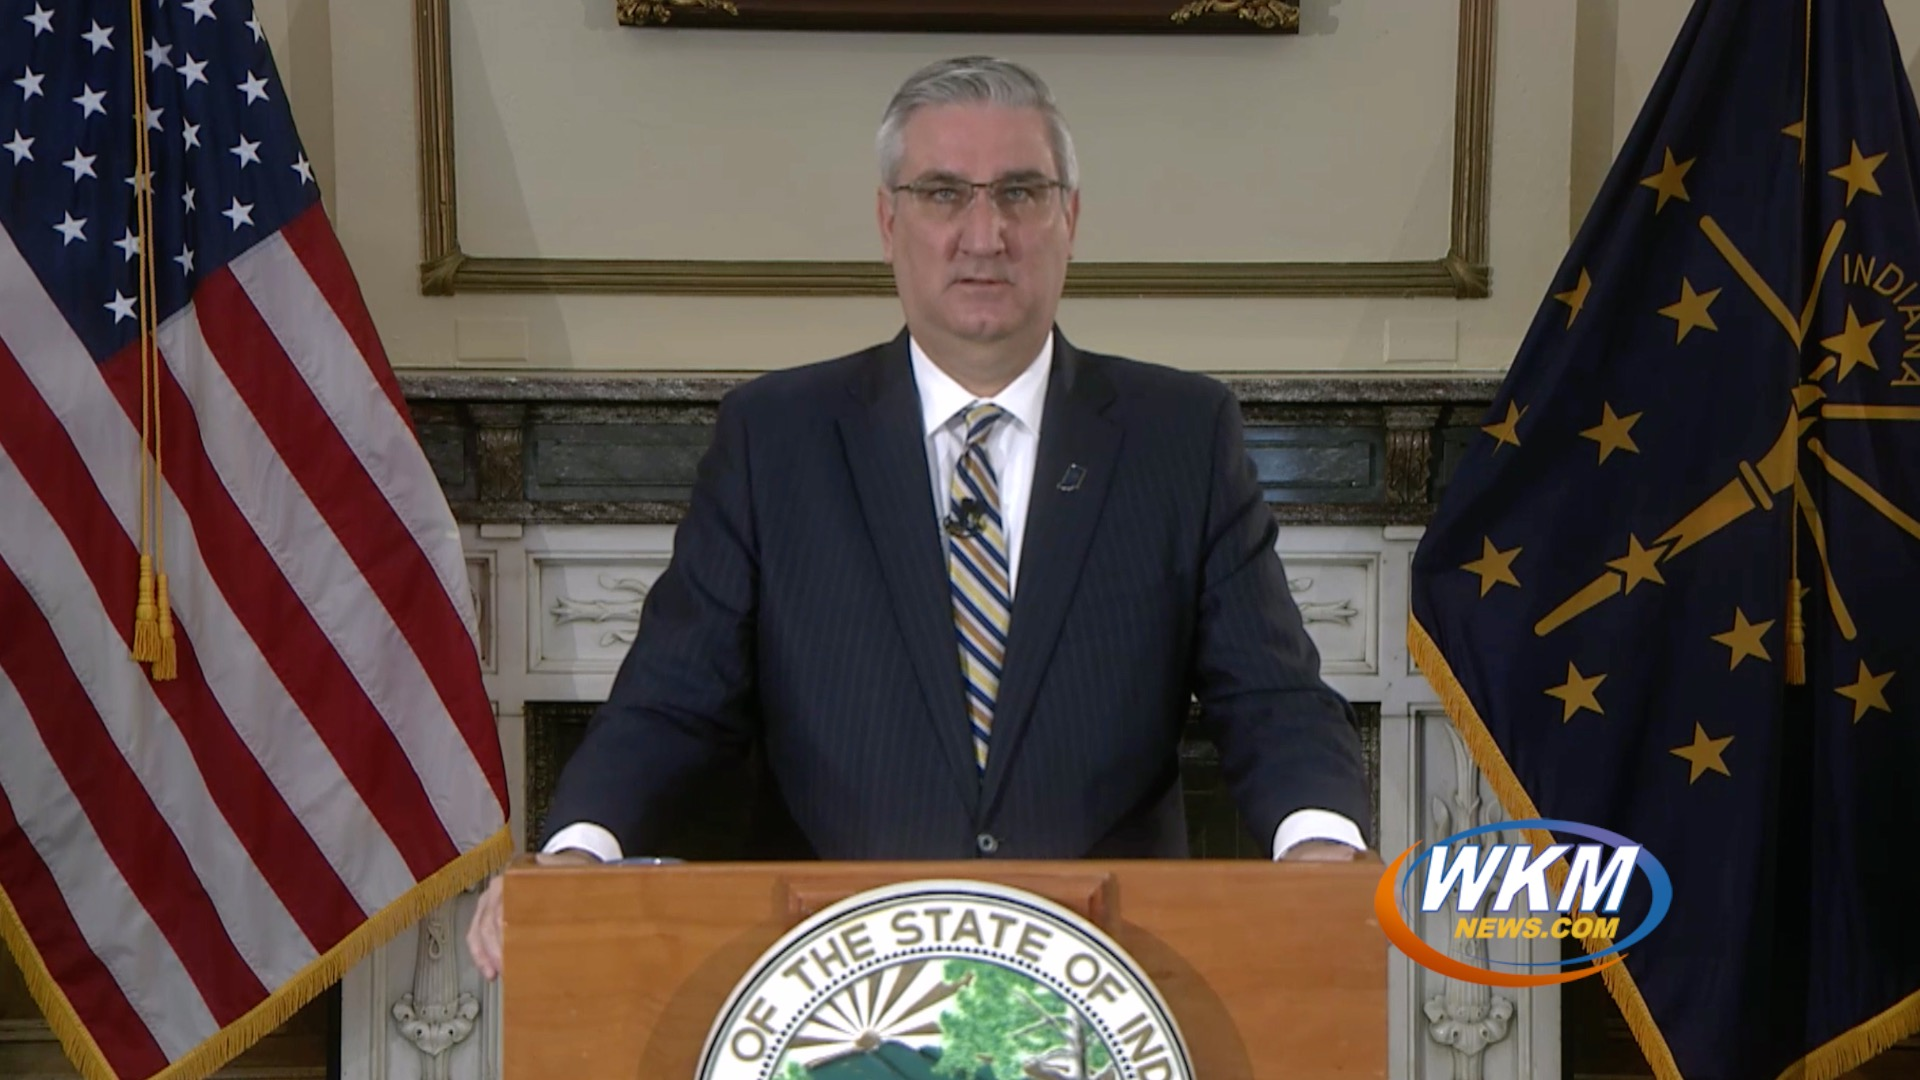 Governor Holcomb Issues Stay-At-Home Order for Indiana